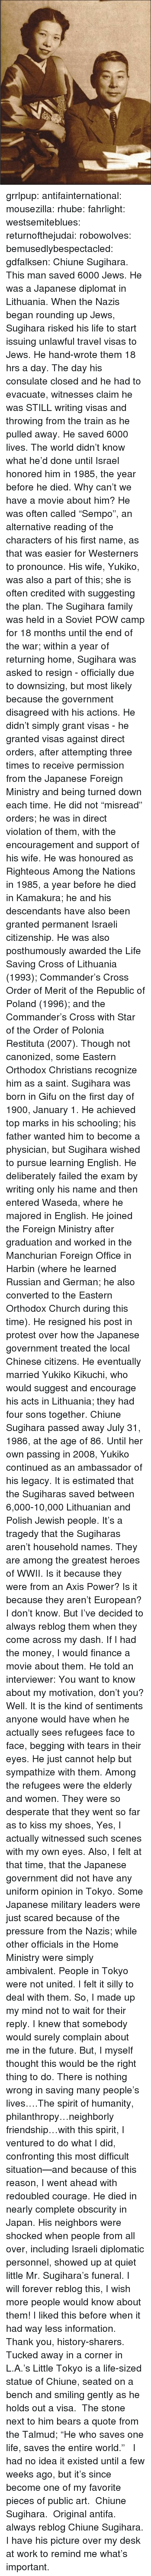 """diplomat: grrlpup: antifainternational:  mousezilla:  rhube:  fahrlight:  westsemiteblues:  returnofthejudai:  robowolves:  bemusedlybespectacled:  gdfalksen:  Chiune Sugihara. This man saved 6000 Jews. He was a Japanese diplomat in Lithuania. When the Nazis began rounding up Jews, Sugihara risked his life to start issuing unlawful travel visas to Jews. He hand-wrote them 18 hrs a day. The day his consulate closed and he had to evacuate, witnesses claim he was STILL writing visas and throwing from the train as he pulled away. He saved 6000 lives. The world didn't know what he'd done until Israel honored him in 1985, the year before he died.  Why can't we have a movie about him?  He was often called """"Sempo"""", an alternative reading of the characters of his first name, as that was easier for Westerners to pronounce. His wife, Yukiko, was also a part of this; she is often credited with suggesting the plan. The Sugihara family was held in a Soviet POW camp for 18 months until the end of the war; within a year of returning home, Sugihara was asked to resign - officially due to downsizing, but most likely because the government disagreed with his actions. He didn't simply grant visas - he granted visas against direct orders, after attempting three times to receive permission from the Japanese Foreign Ministry and being turned down each time. He did not """"misread"""" orders; he was in direct violation of them, with the encouragement and support of his wife. He was honoured as Righteous Among the Nations in 1985, a year before he died in Kamakura; he and his descendants have also been granted permanent Israeli citizenship. He was also posthumously awarded the Life Saving Cross of Lithuania (1993); Commander's Cross Order of Merit of the Republic of Poland (1996); and the Commander's Cross with Star of the Order of Polonia Restituta (2007). Though not canonized, some Eastern Orthodox Christians recognize him as a saint. Sugihara was born in Gifu on the first day of 1900, January """